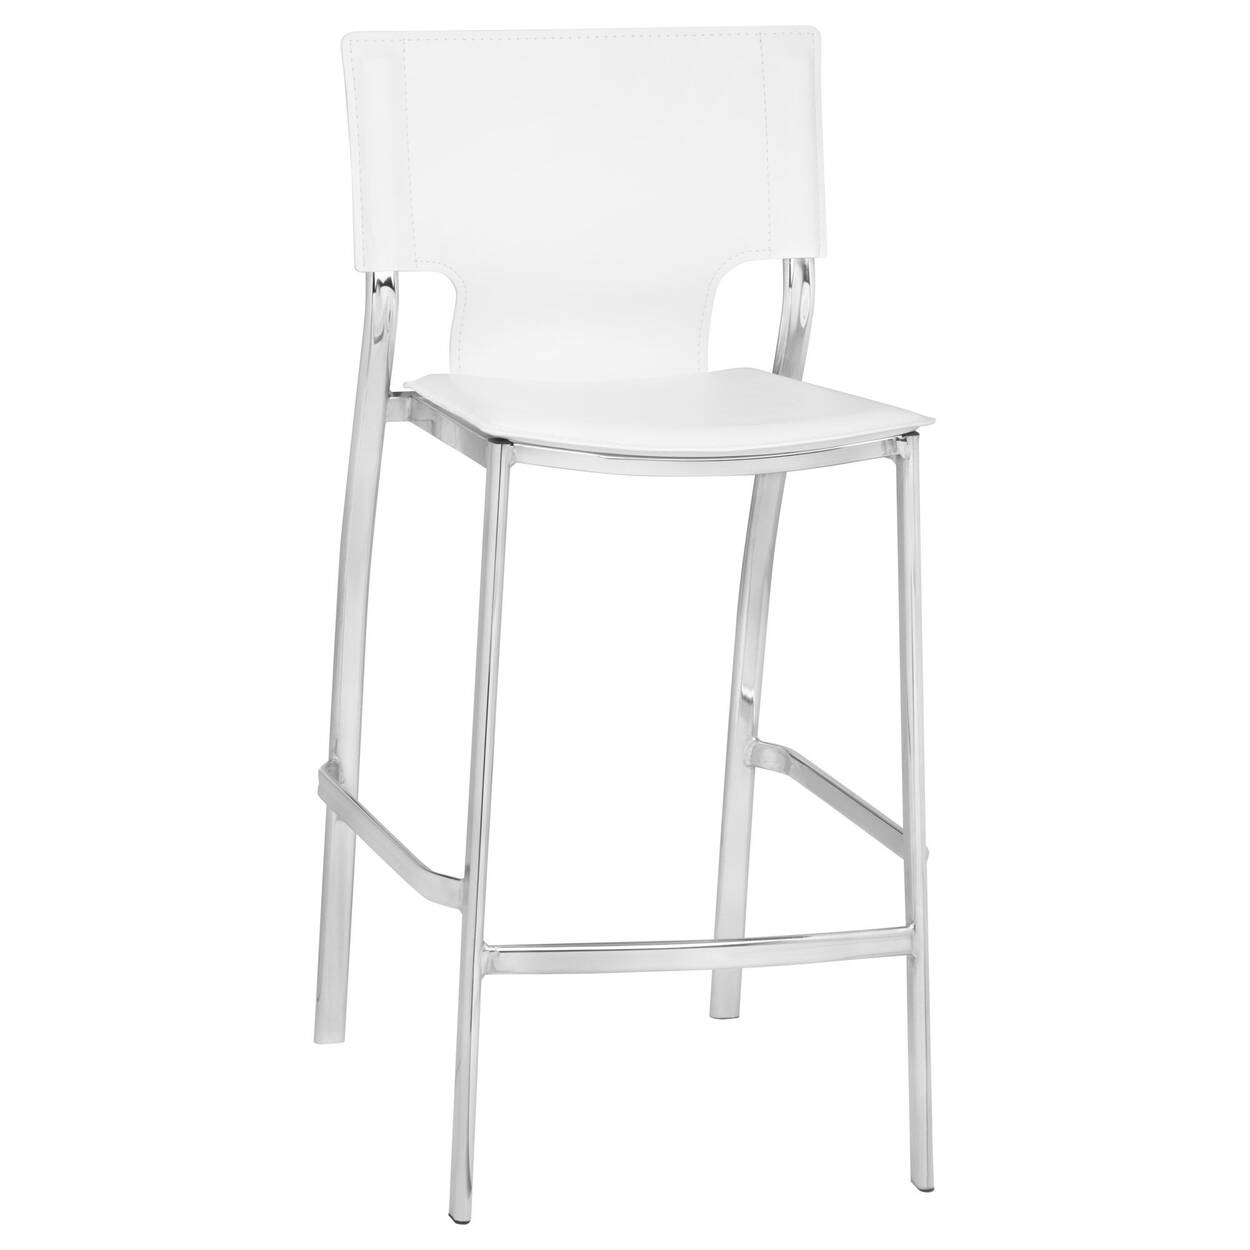 inch counter of product metal garden white stools stool loft today tabouret overstock shipping home set carbon bar free